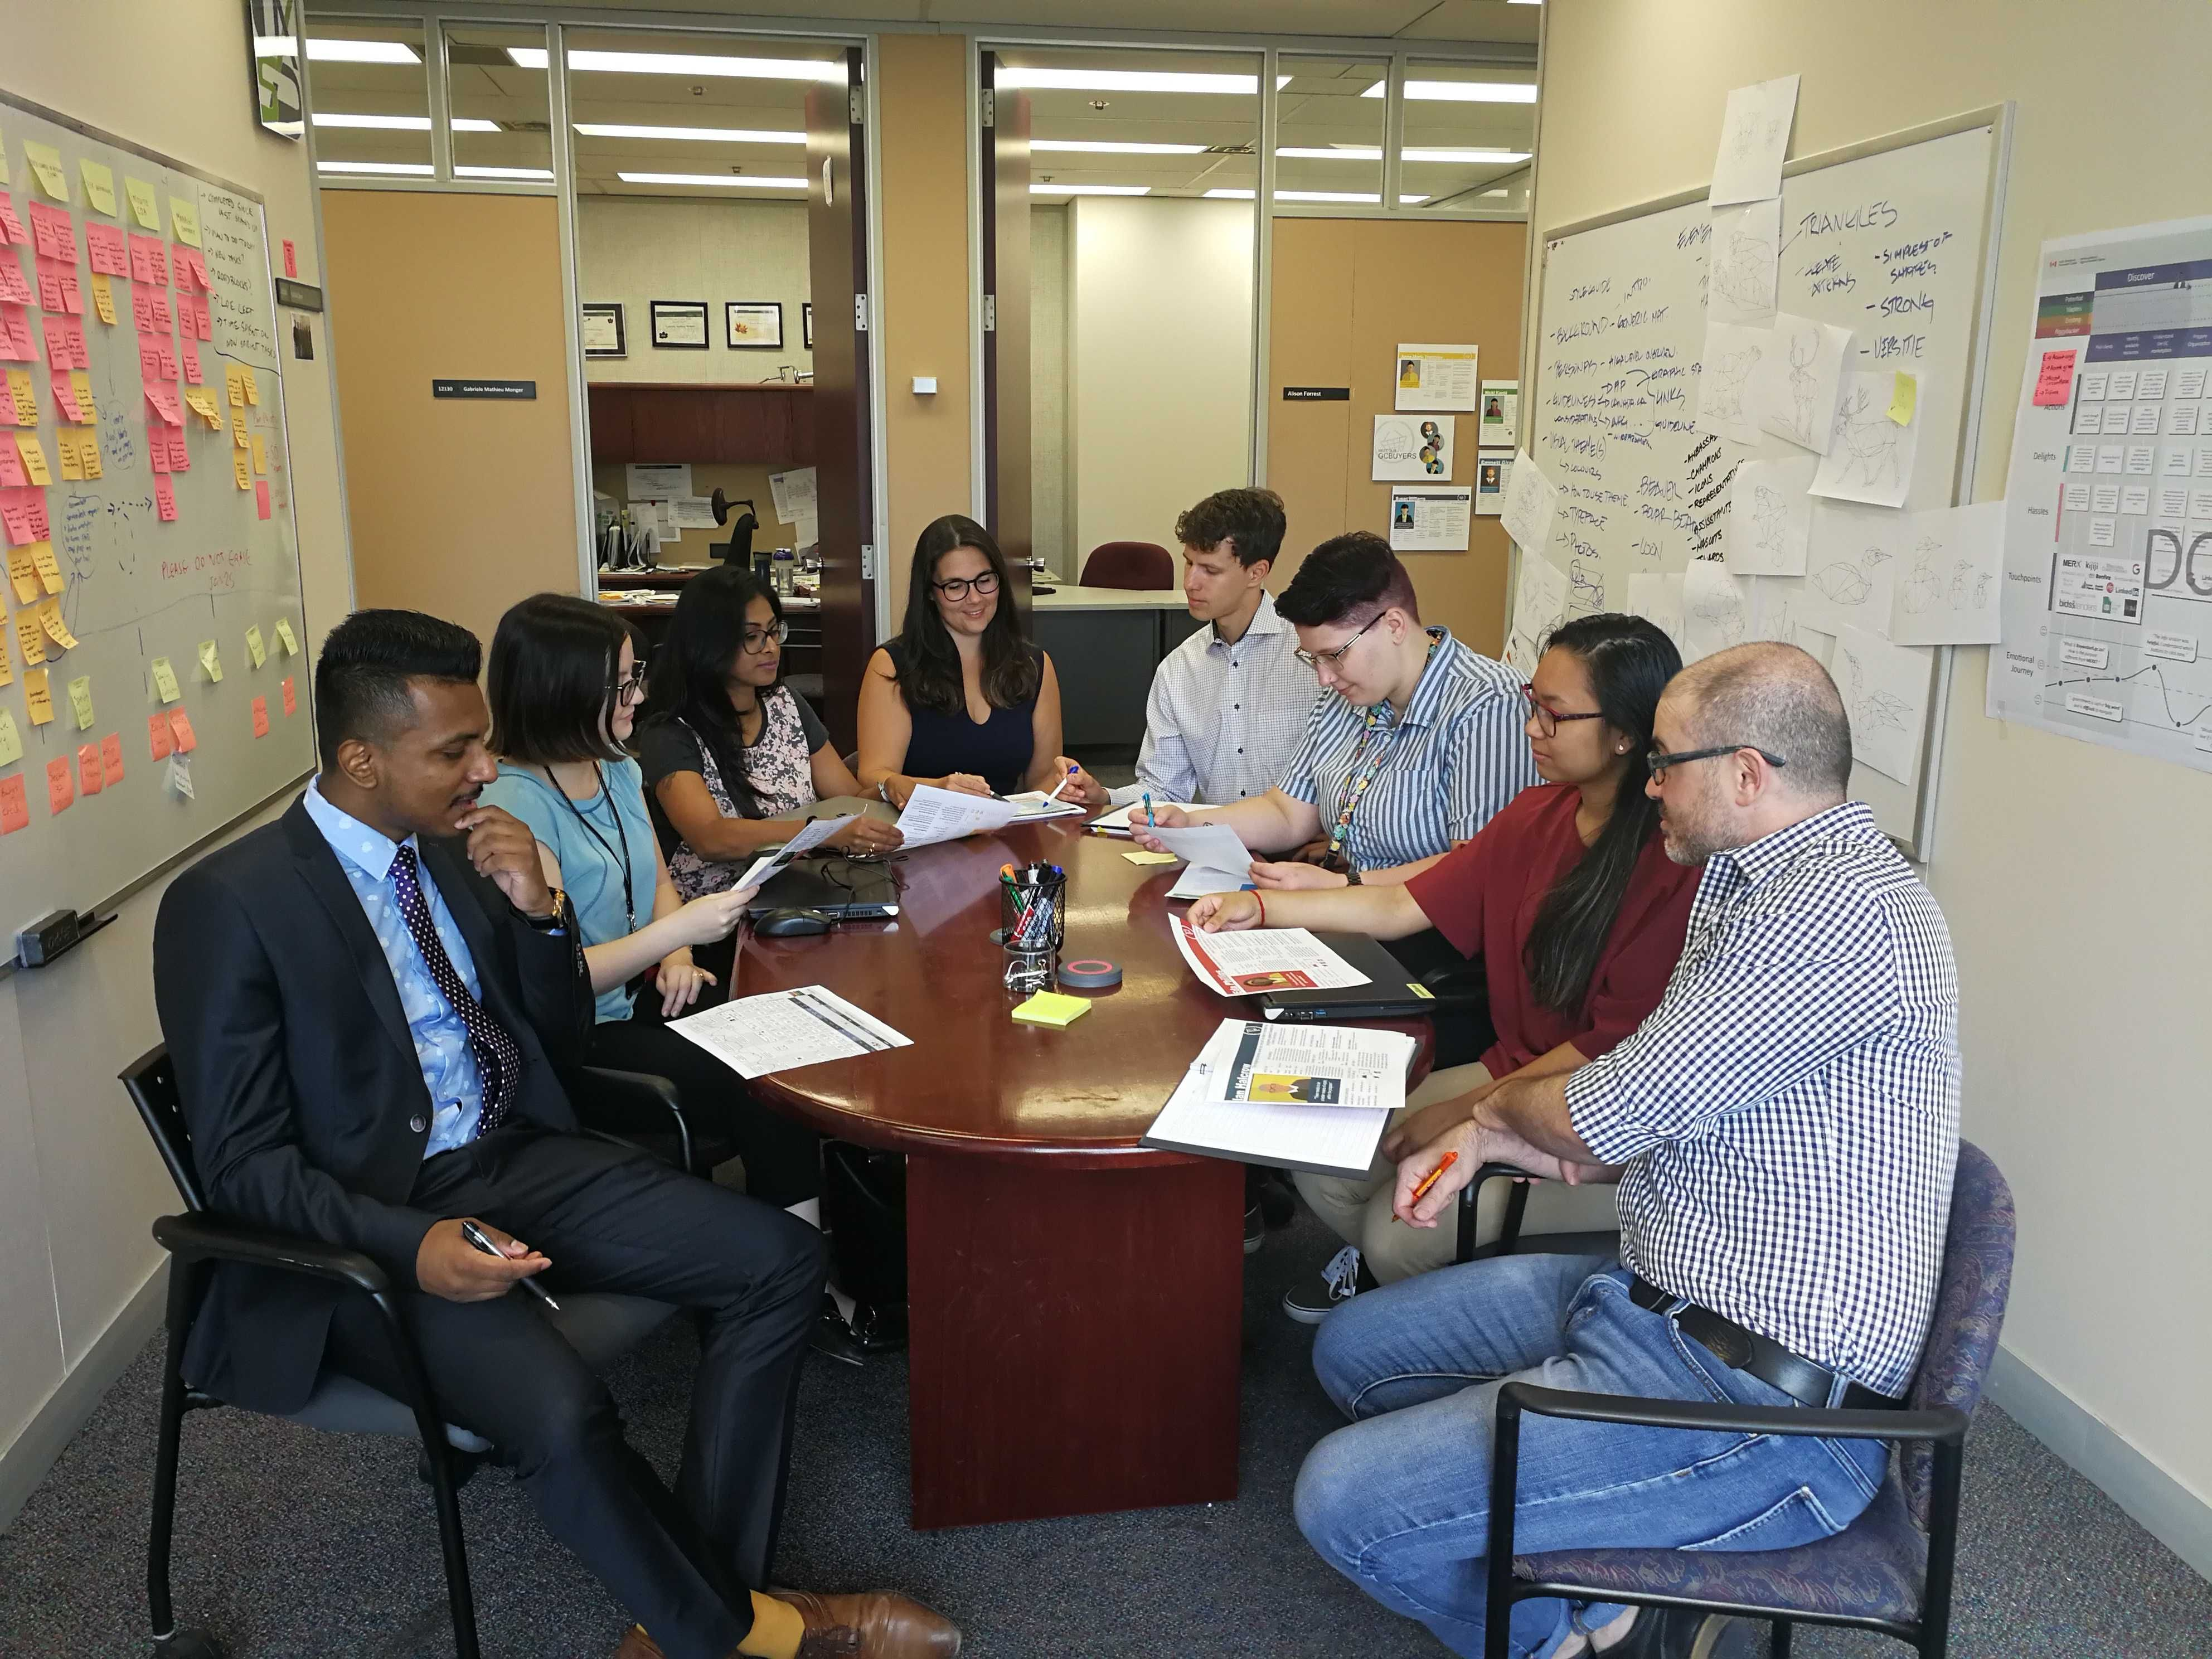 A photo of PSPC's Design Research team.